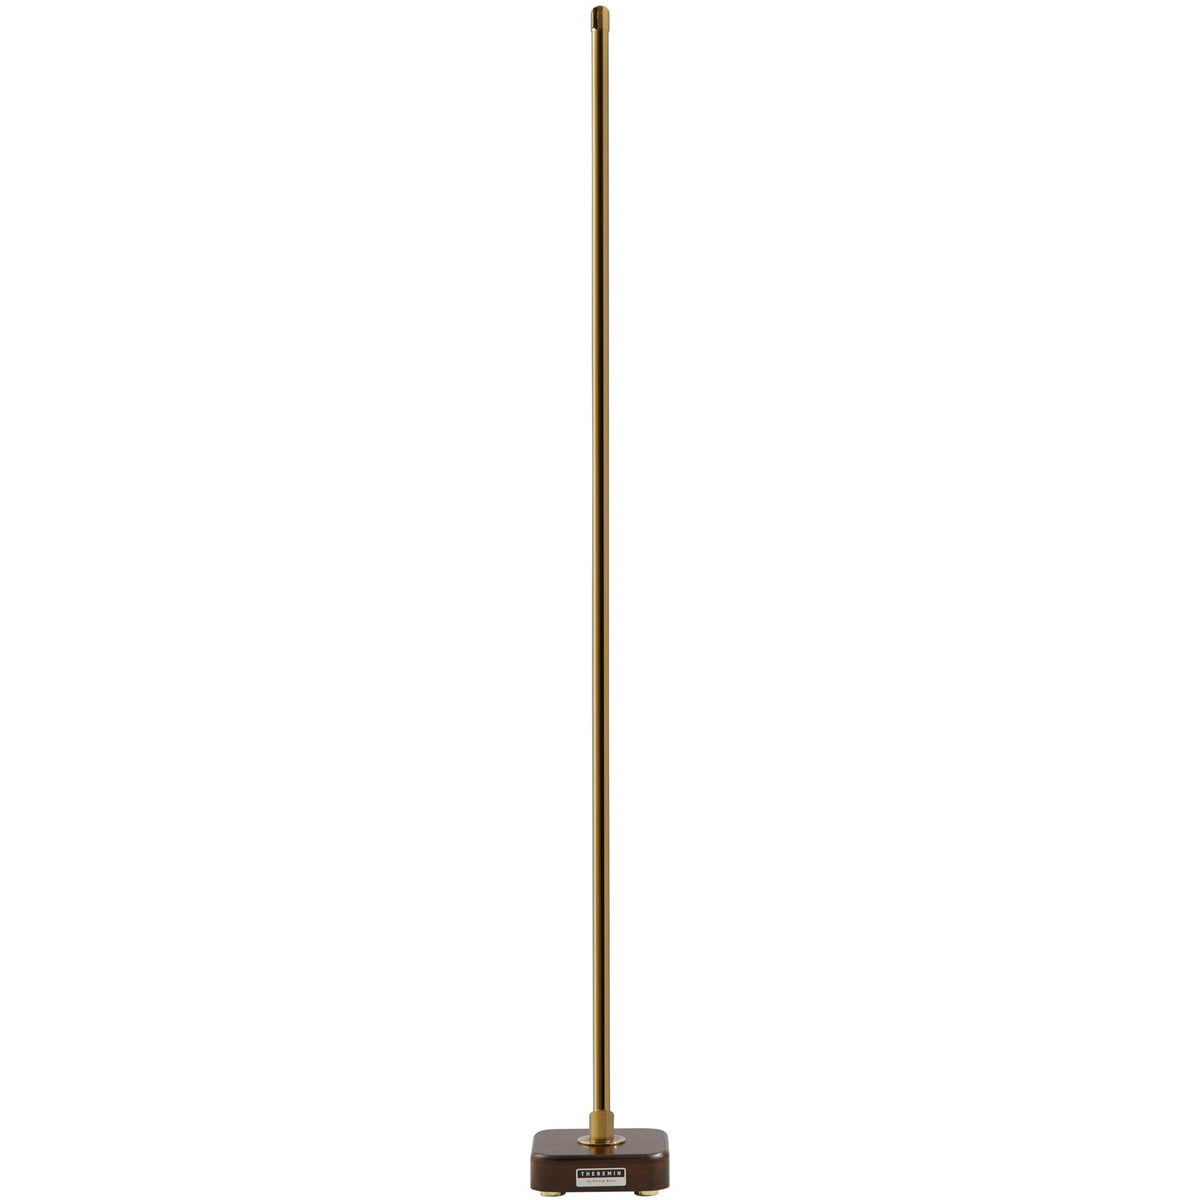 Adesso Home - AD9200-04 - LED Floor Lamp - Theremin - Shiny Gold